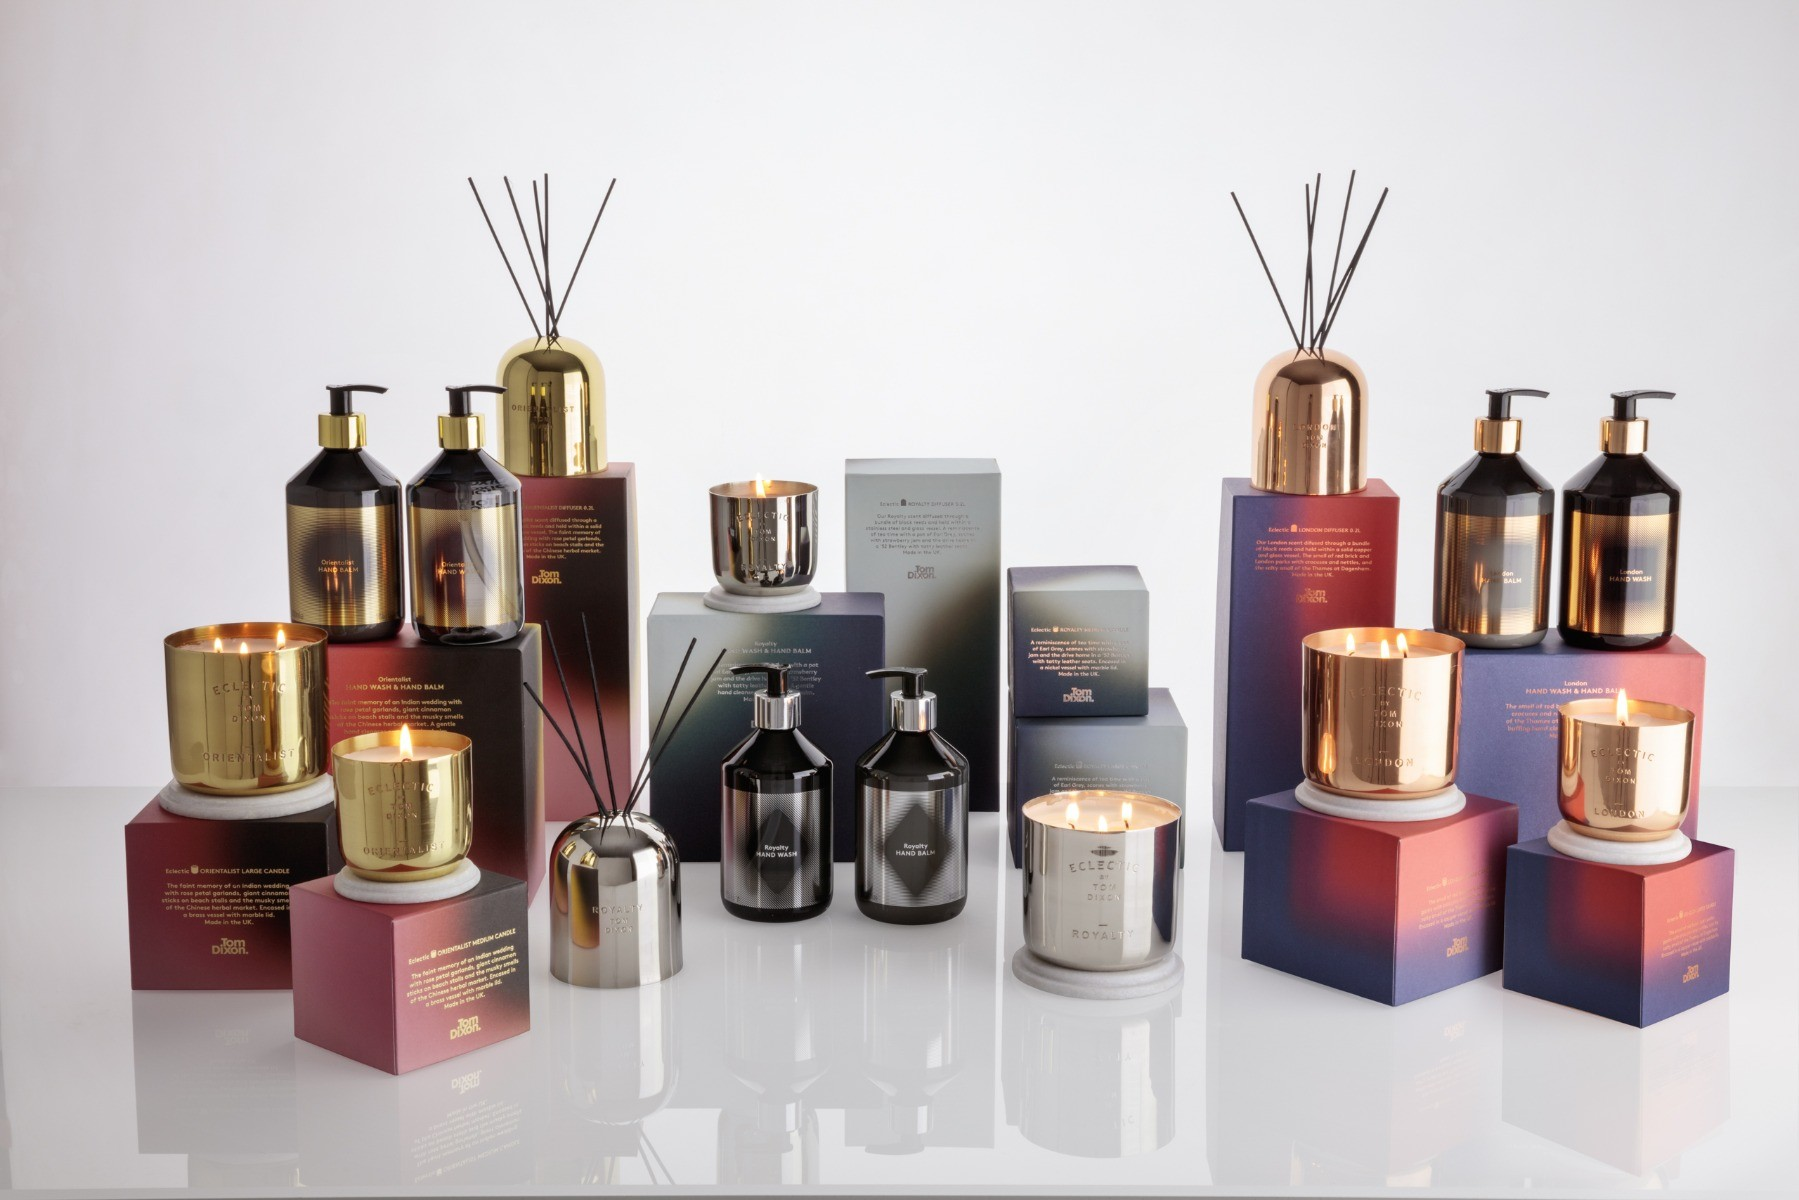 Candles by Tom Dixon